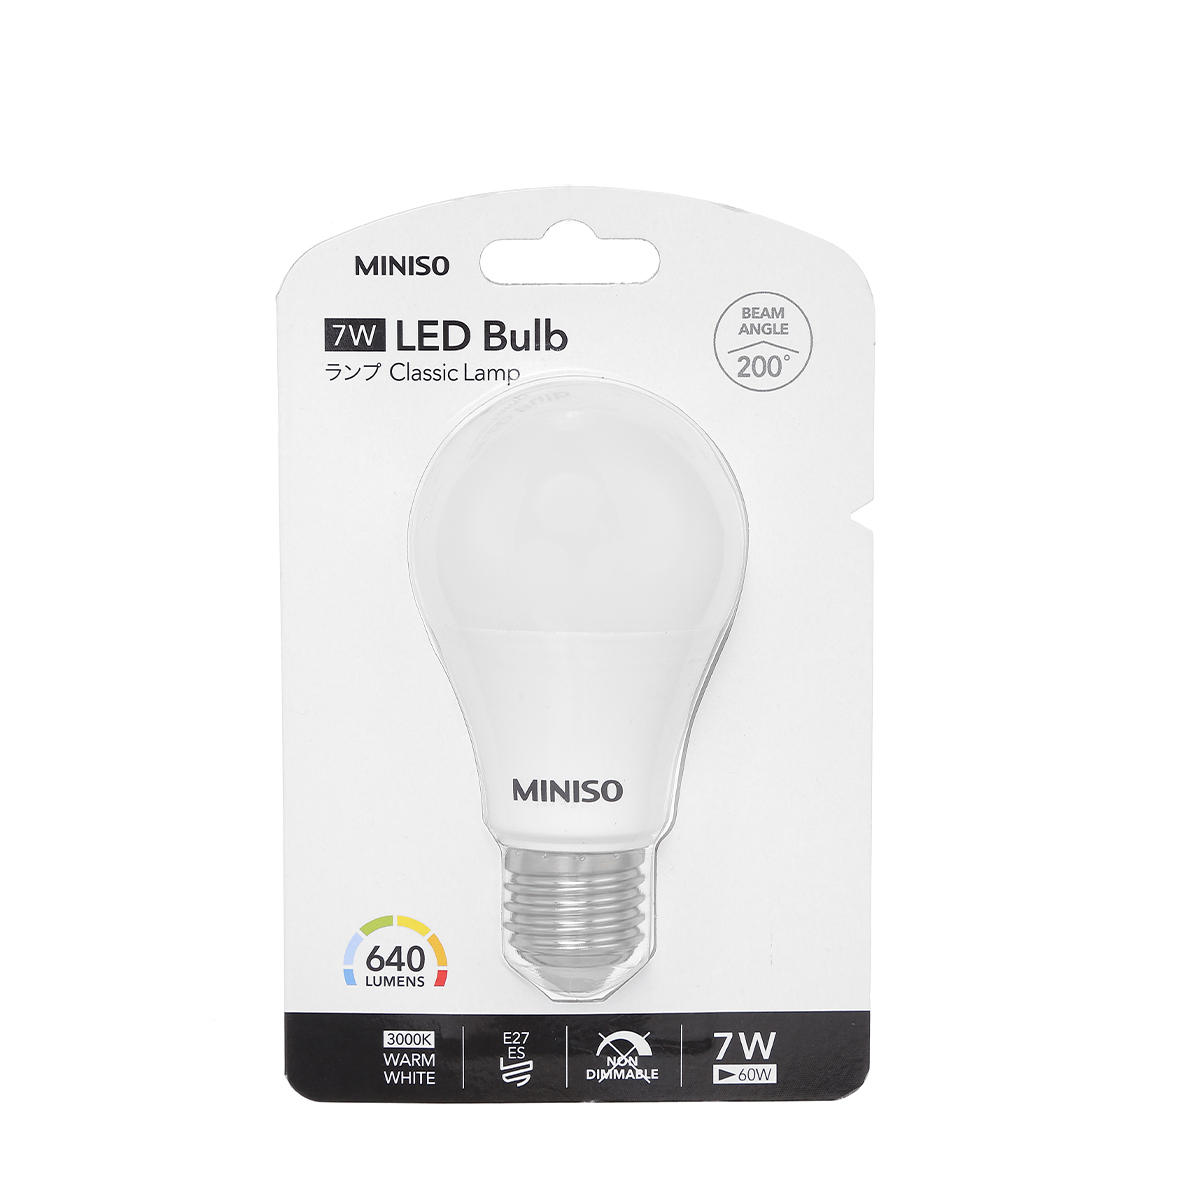 MINISO LA27W7W64 E27 A60 Warm White 7W LED Bulb Indoor Lighting For Porch Living Room Home